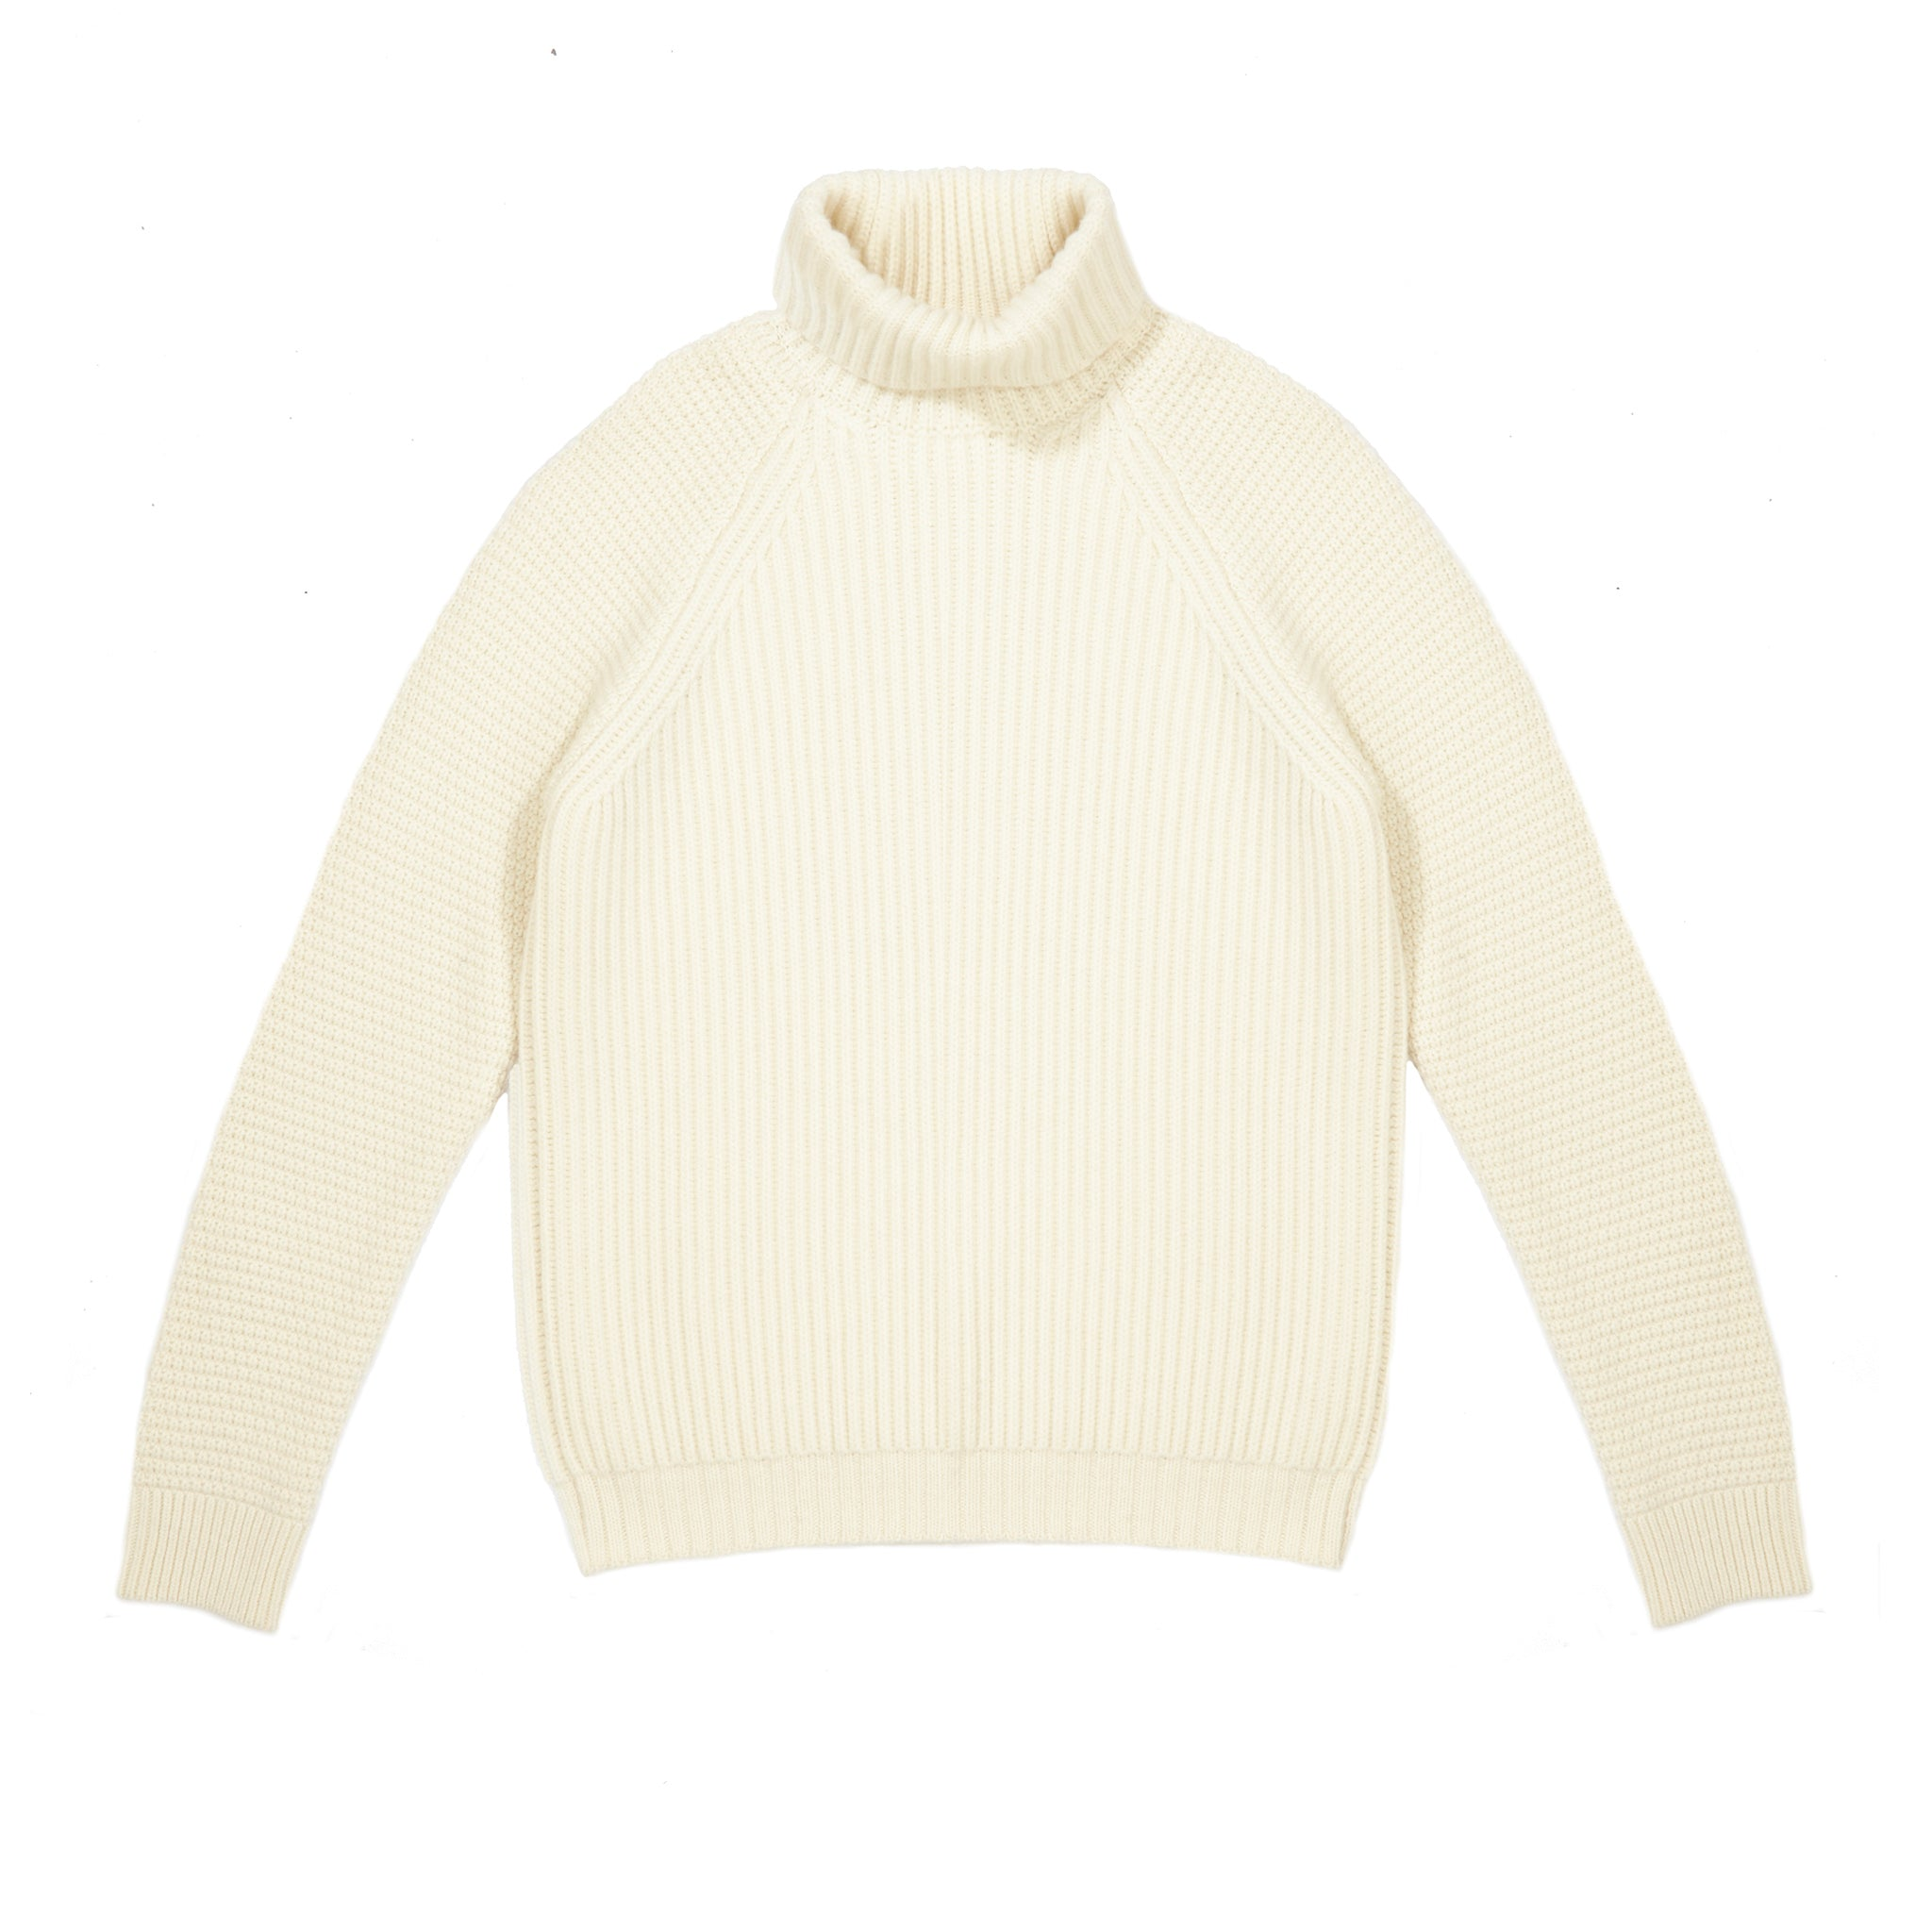 Archie Foal Unisex Lukas Sweater in Cream